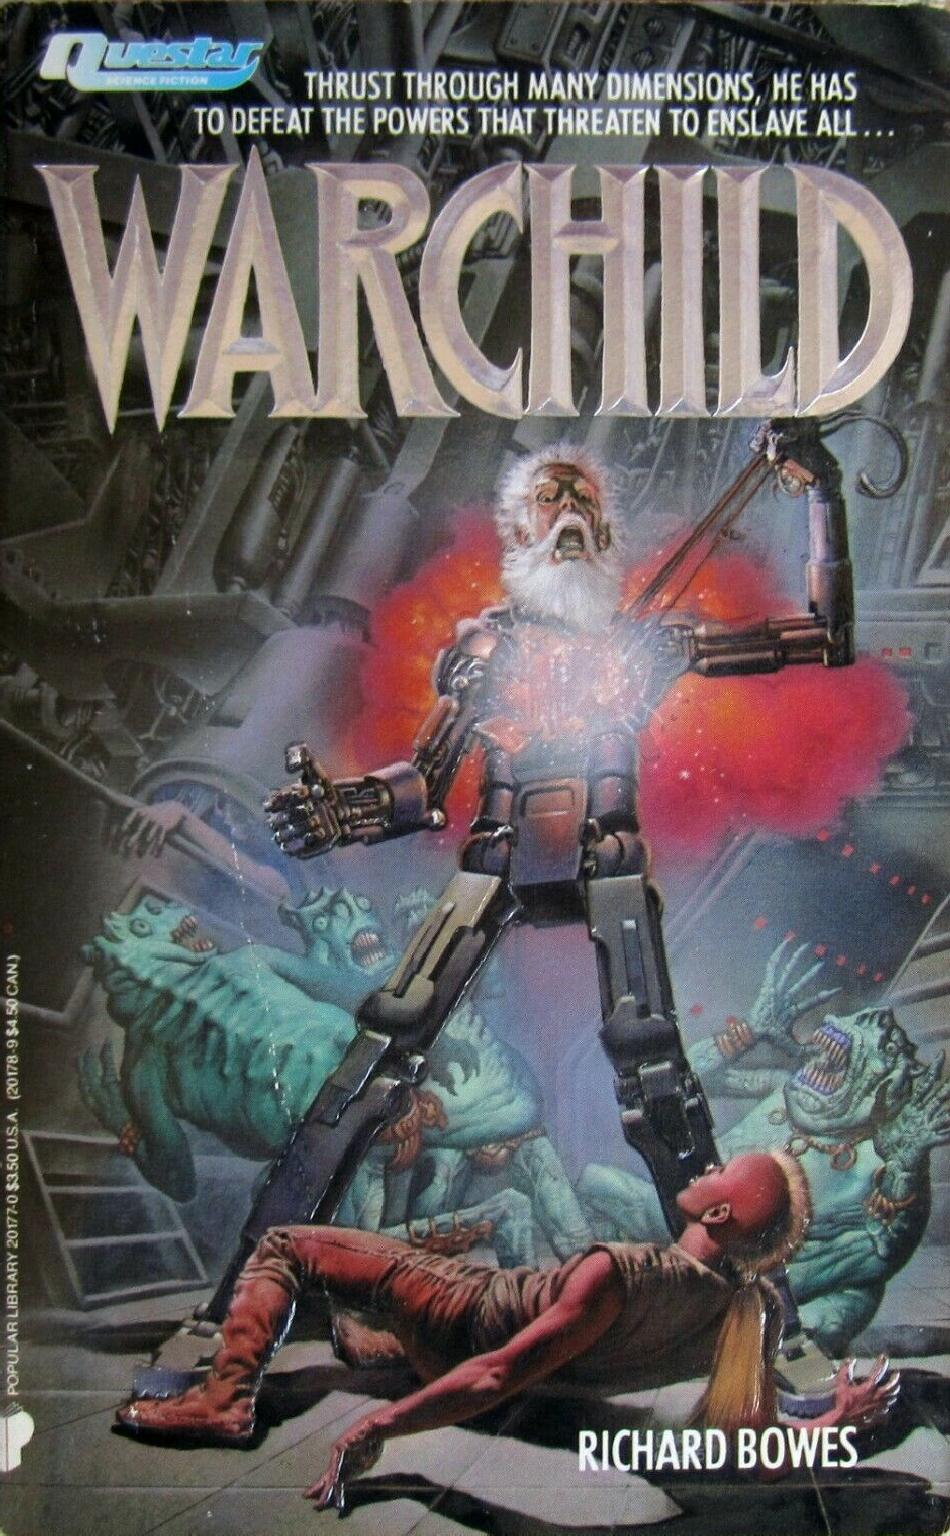 The Warchild is father to the warman.